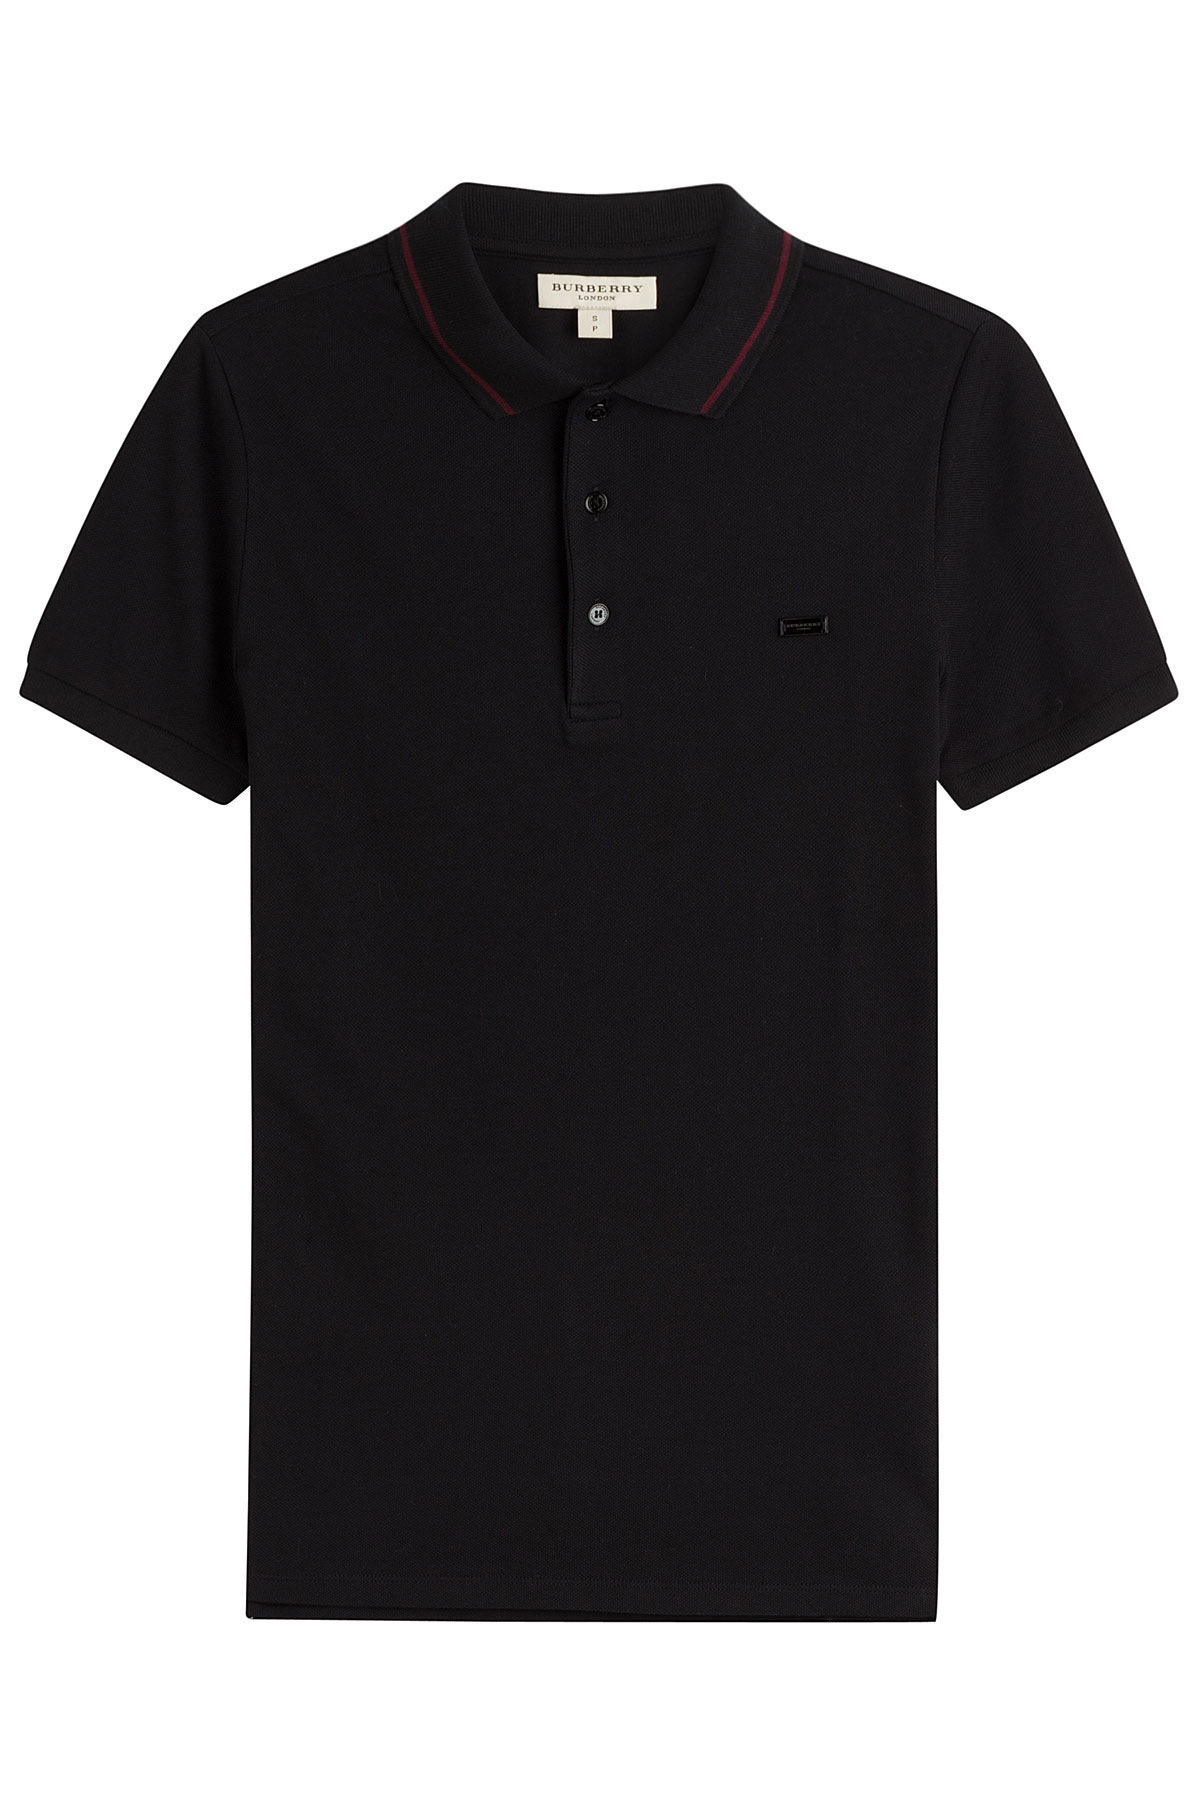 Burberry cotton polo shirt blue in black for men lyst for Black cotton polo shirt